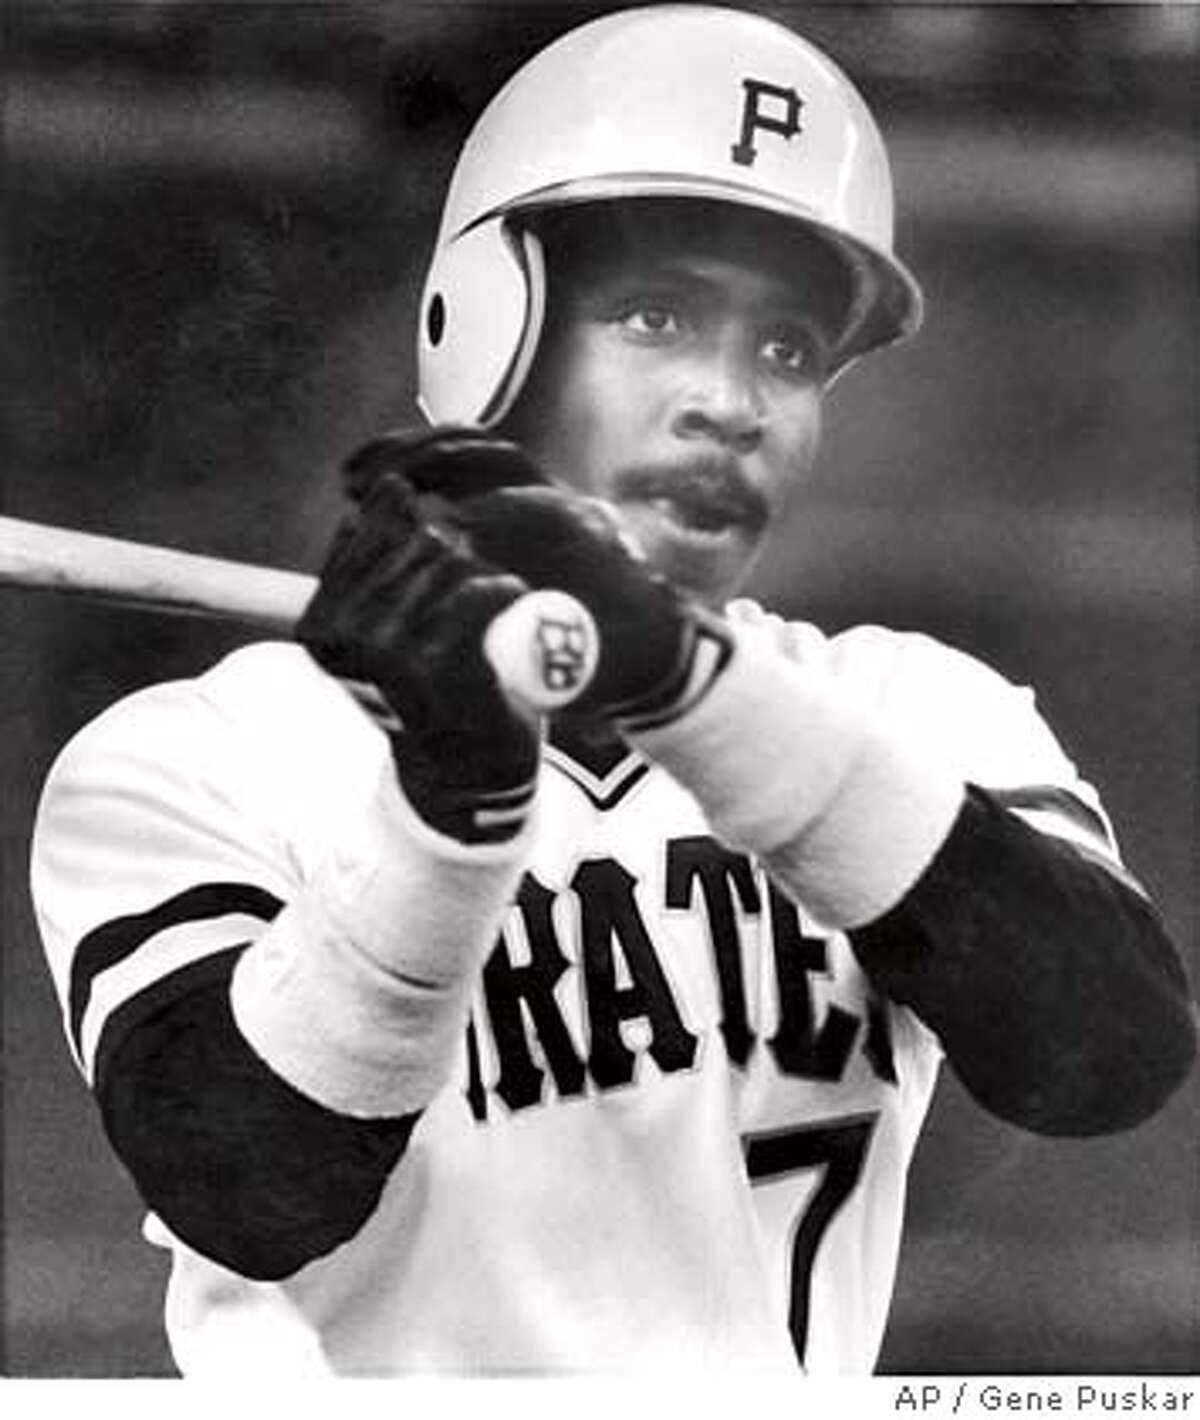 Pittsburgh Pirates' Barry Bonds warms up on the deck circle before his first major league at-bat during the first inning of play against the Los Angeles Dodgers in Pittsburgh, May 30, 1986. (AP Photo/Gene Puskar)